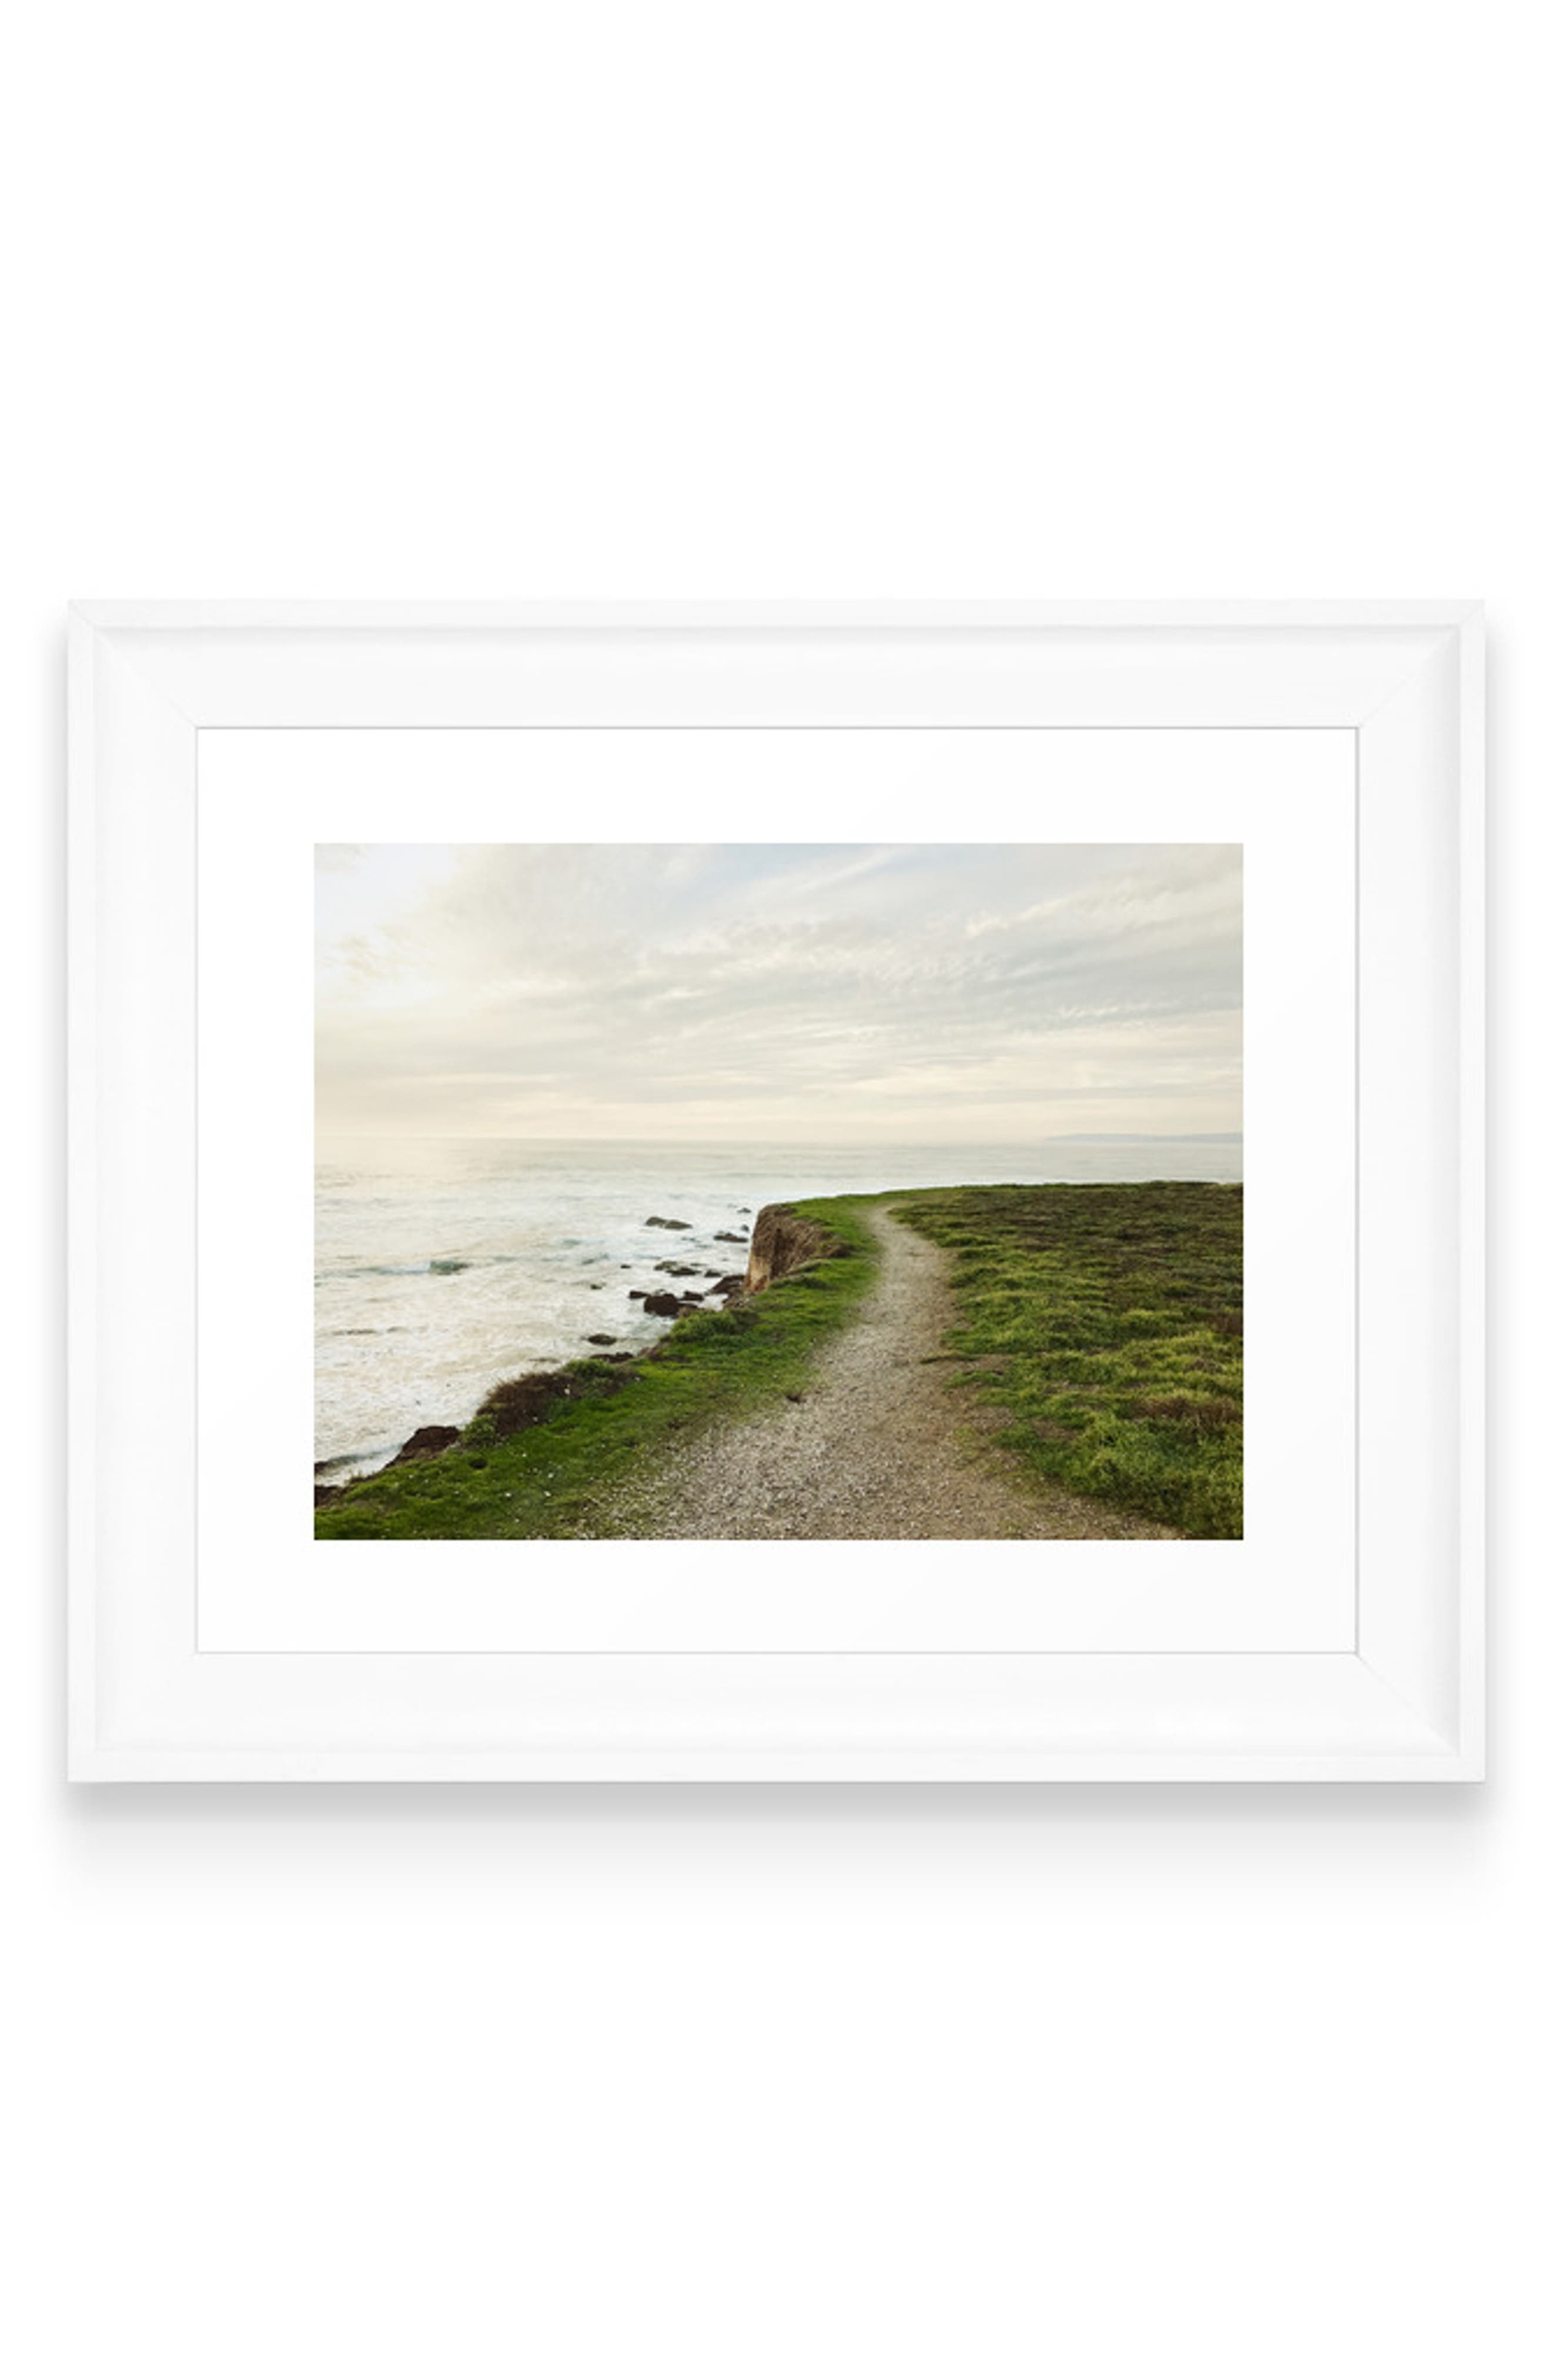 A scene from the rocky California coastline brings a sense of tranquility to a satin-finish art print available on its own or in a ready-to-hang frame. Style Name: Deny Designs California Coast Art Print. Style Number: 5867628 1. Available in stores.